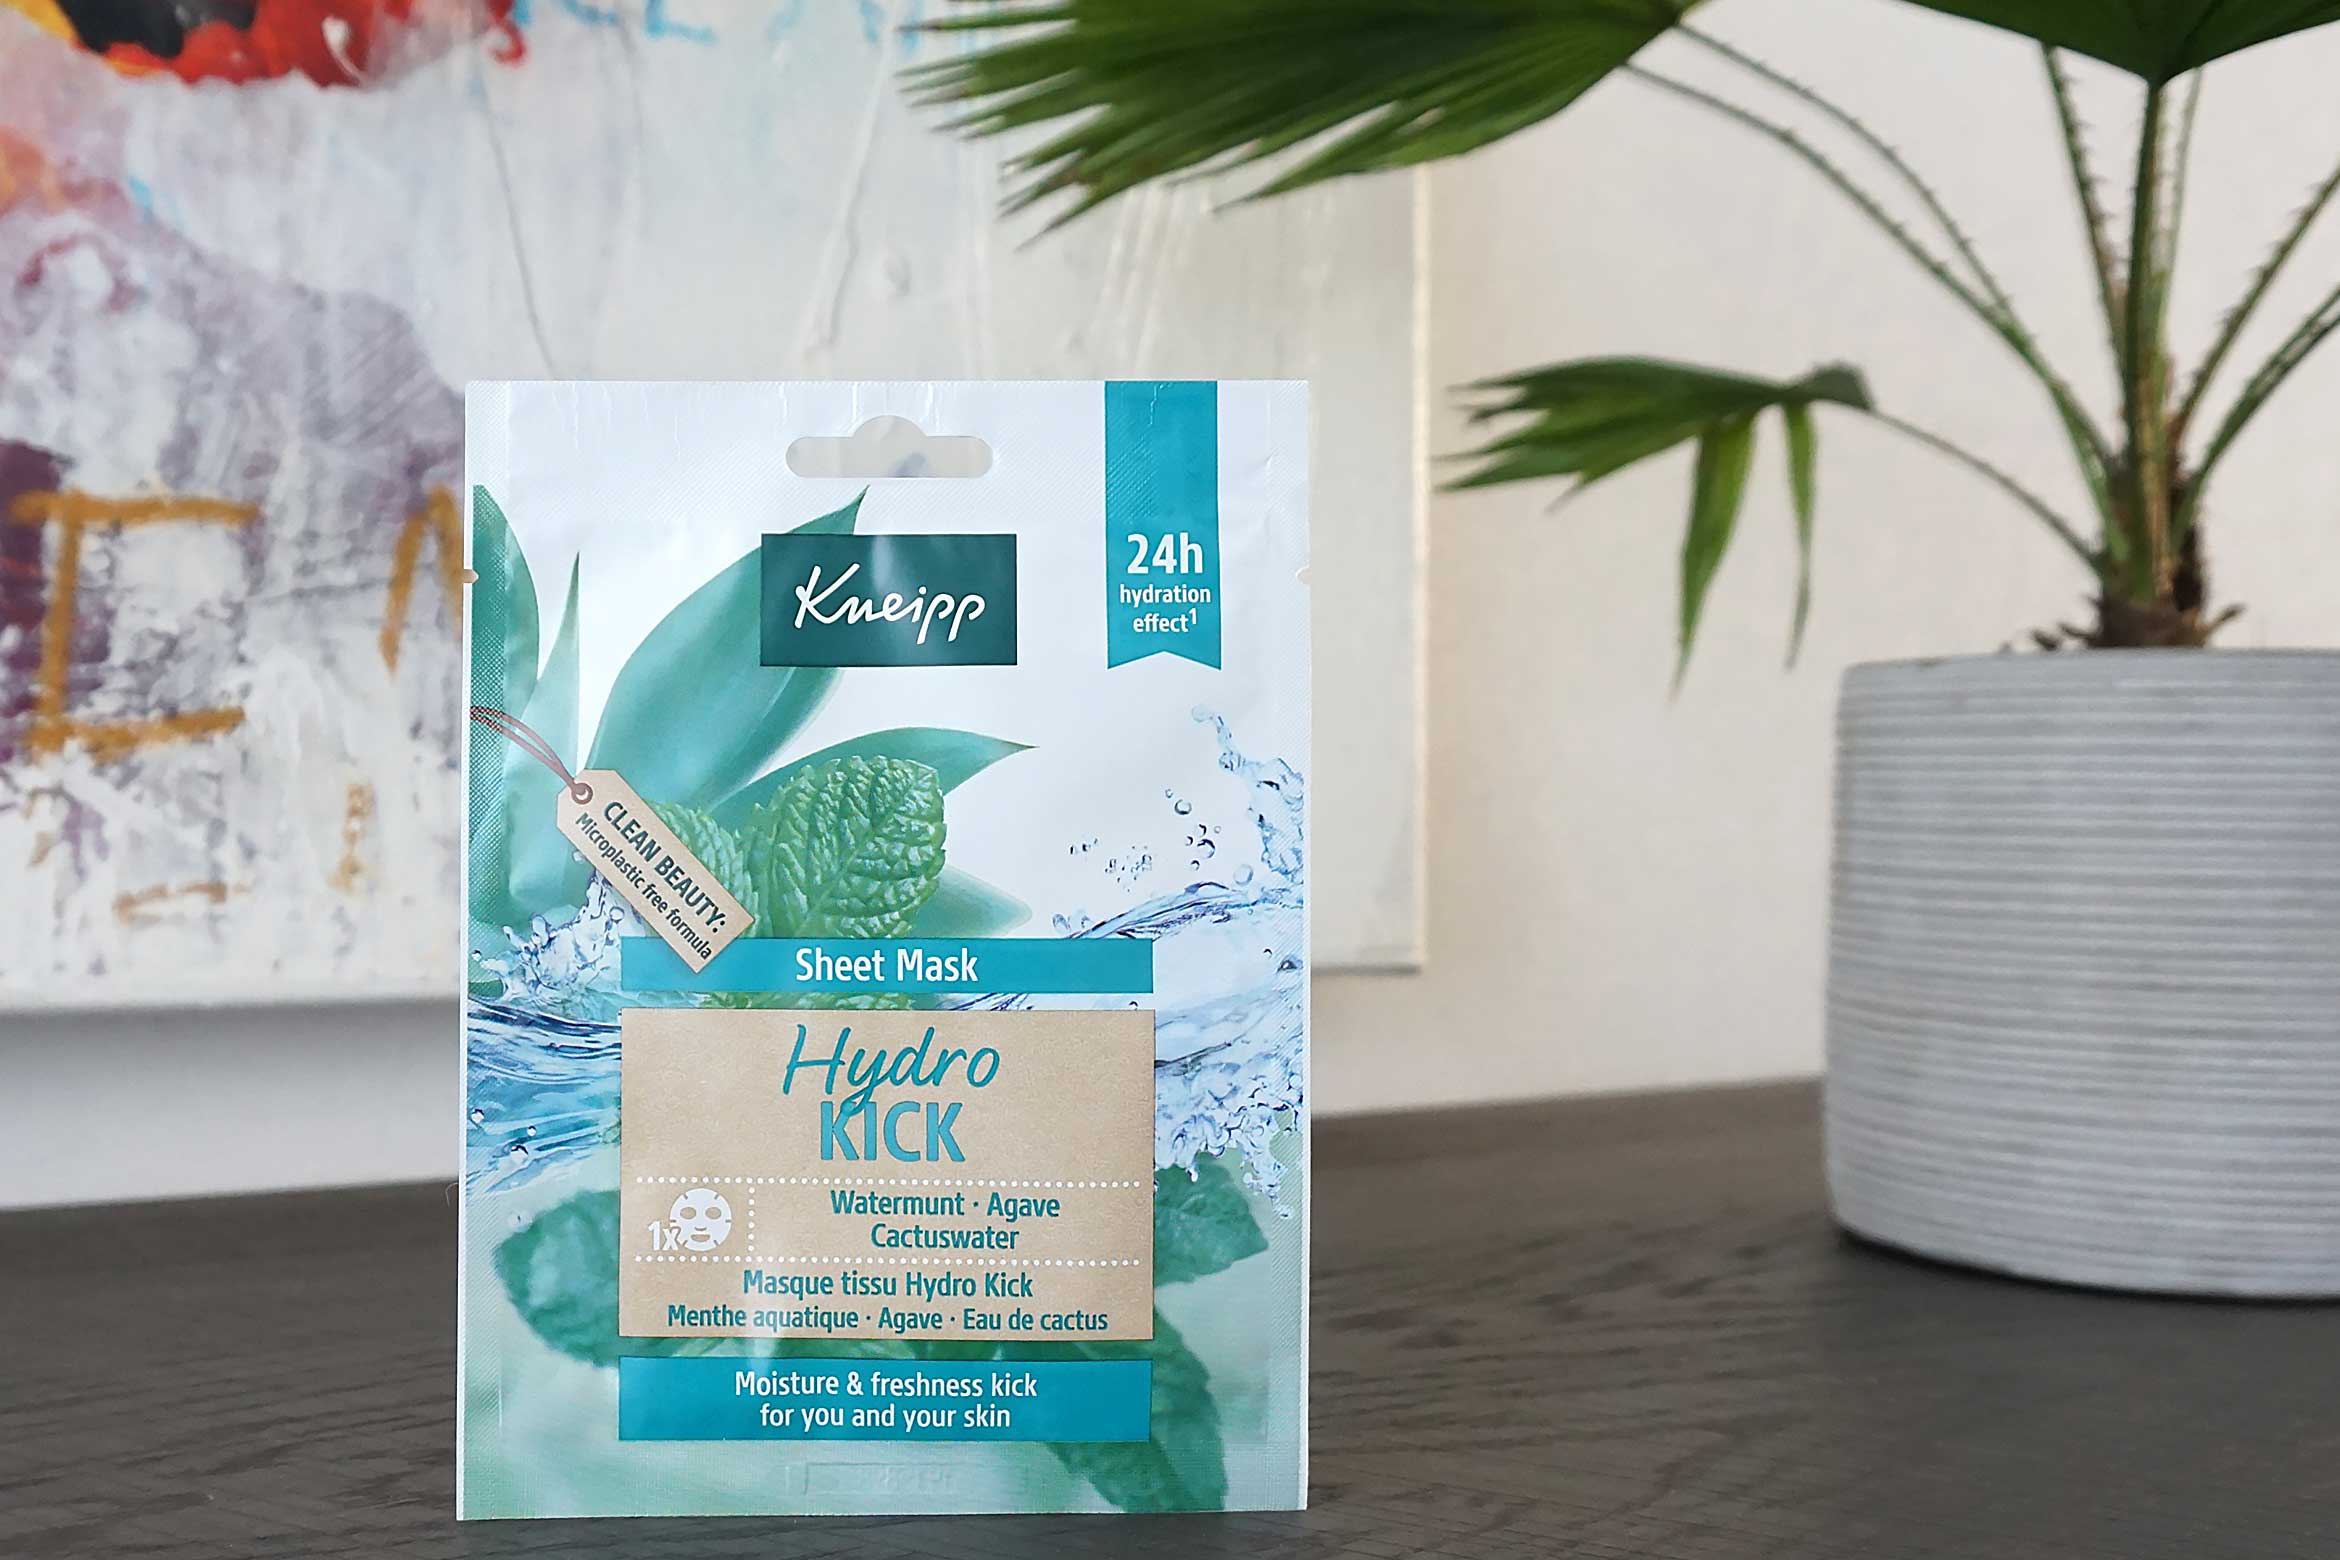 kneipp sheet mask hydro kick review